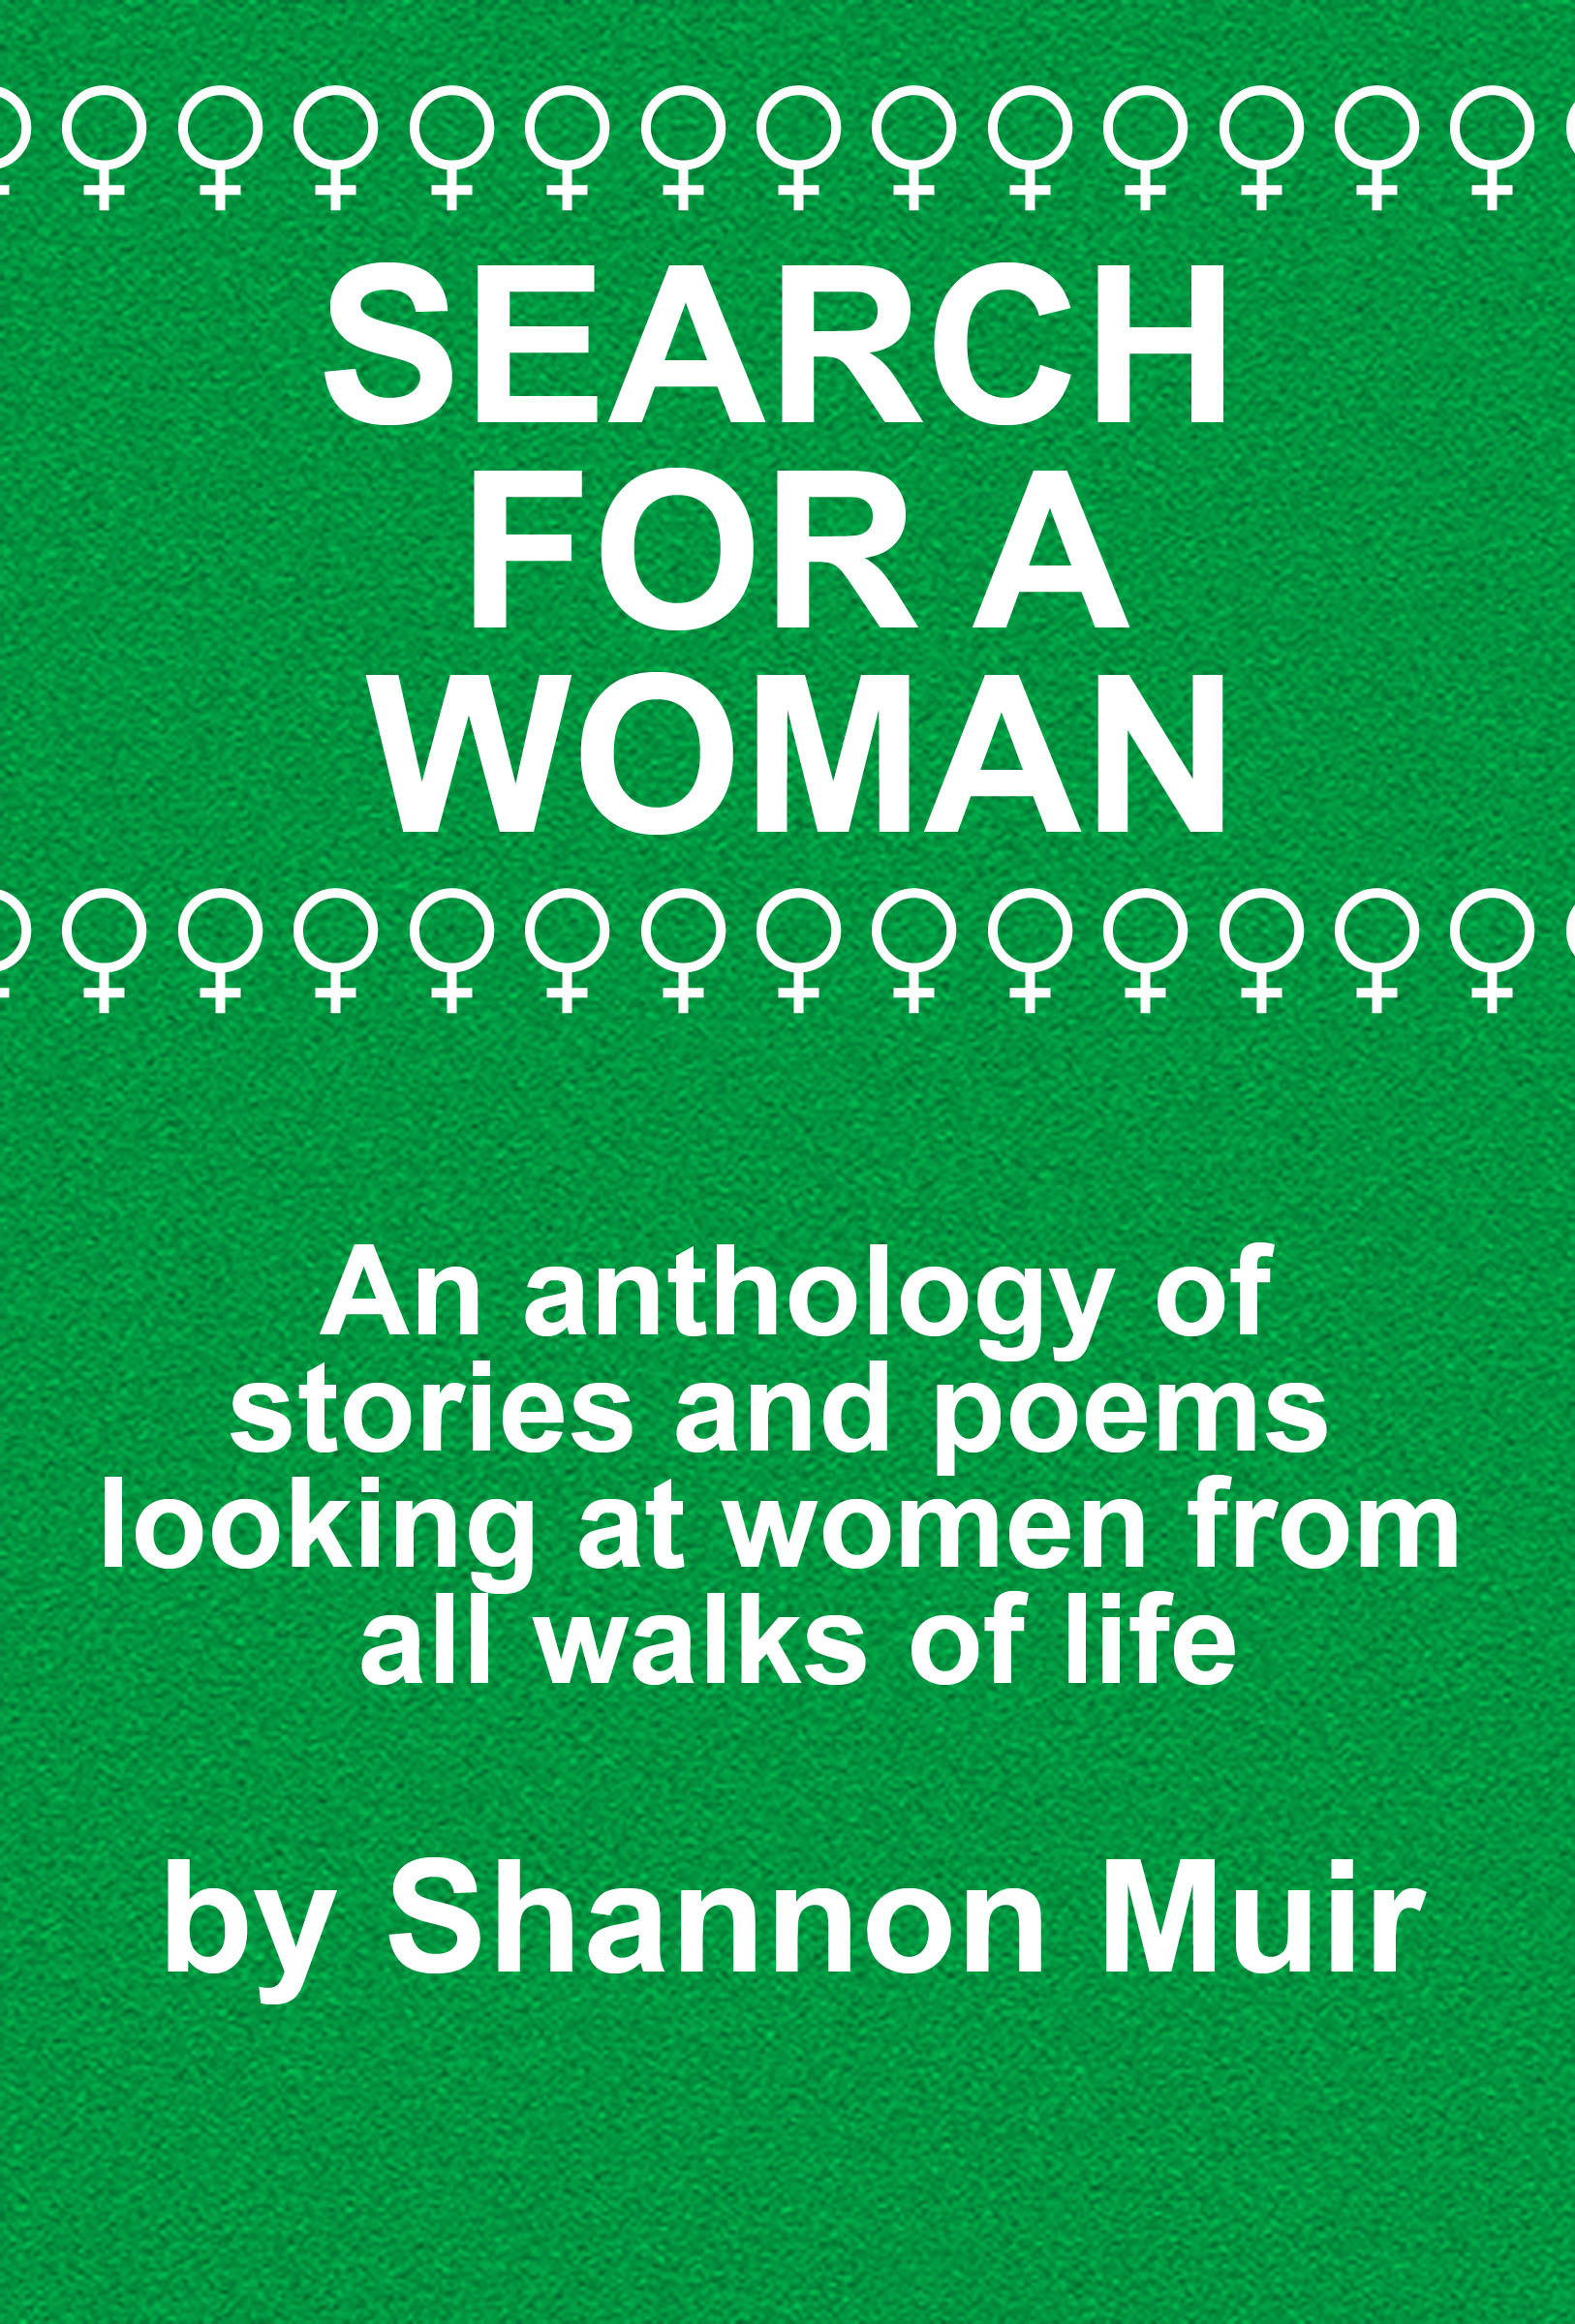 Search for a Woman: An Anthology of Stories and Poems Looking at Women from All Walks of Life